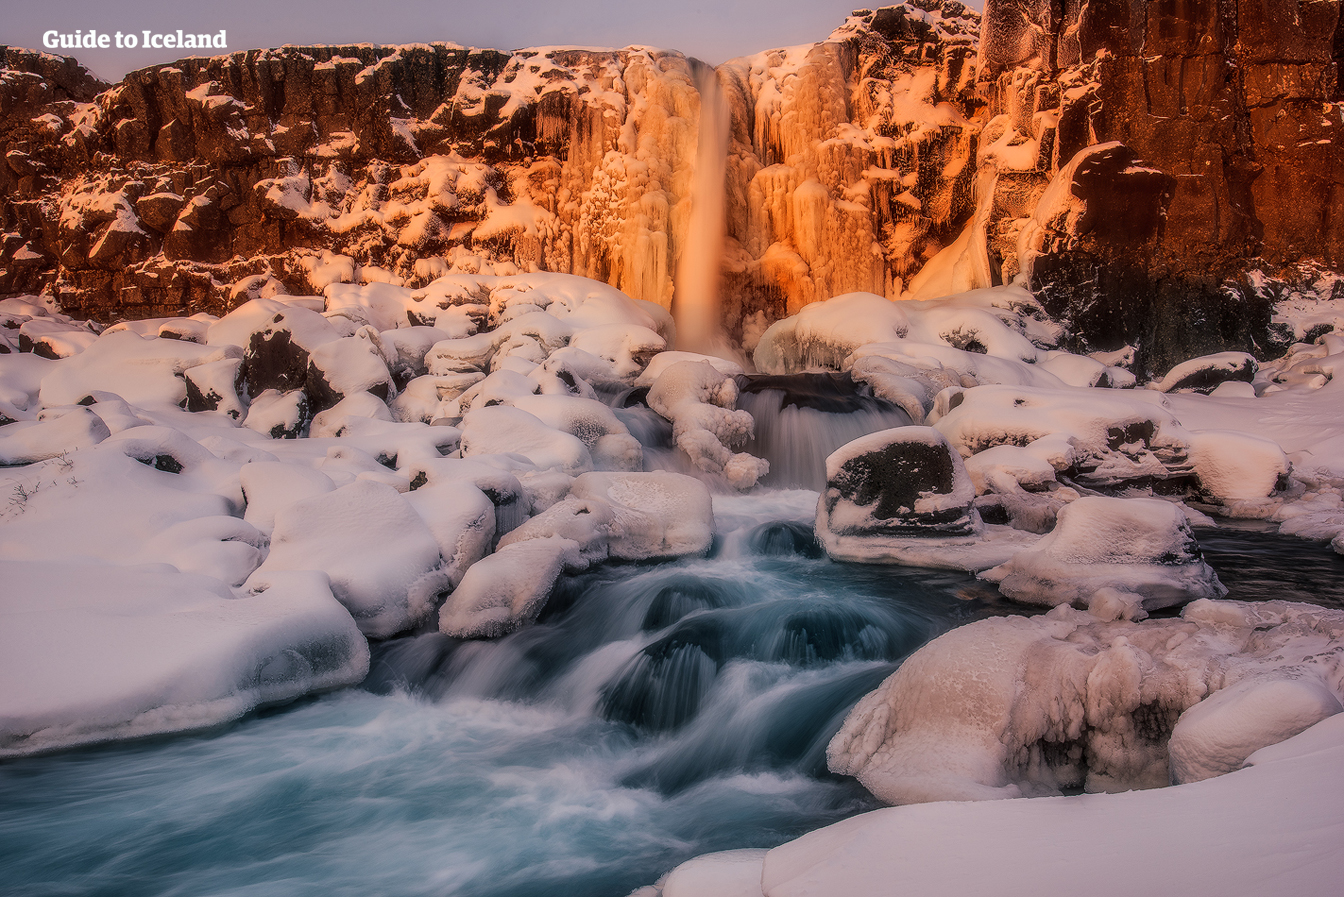 Thingvellir National Park is filled of natural stunning spots